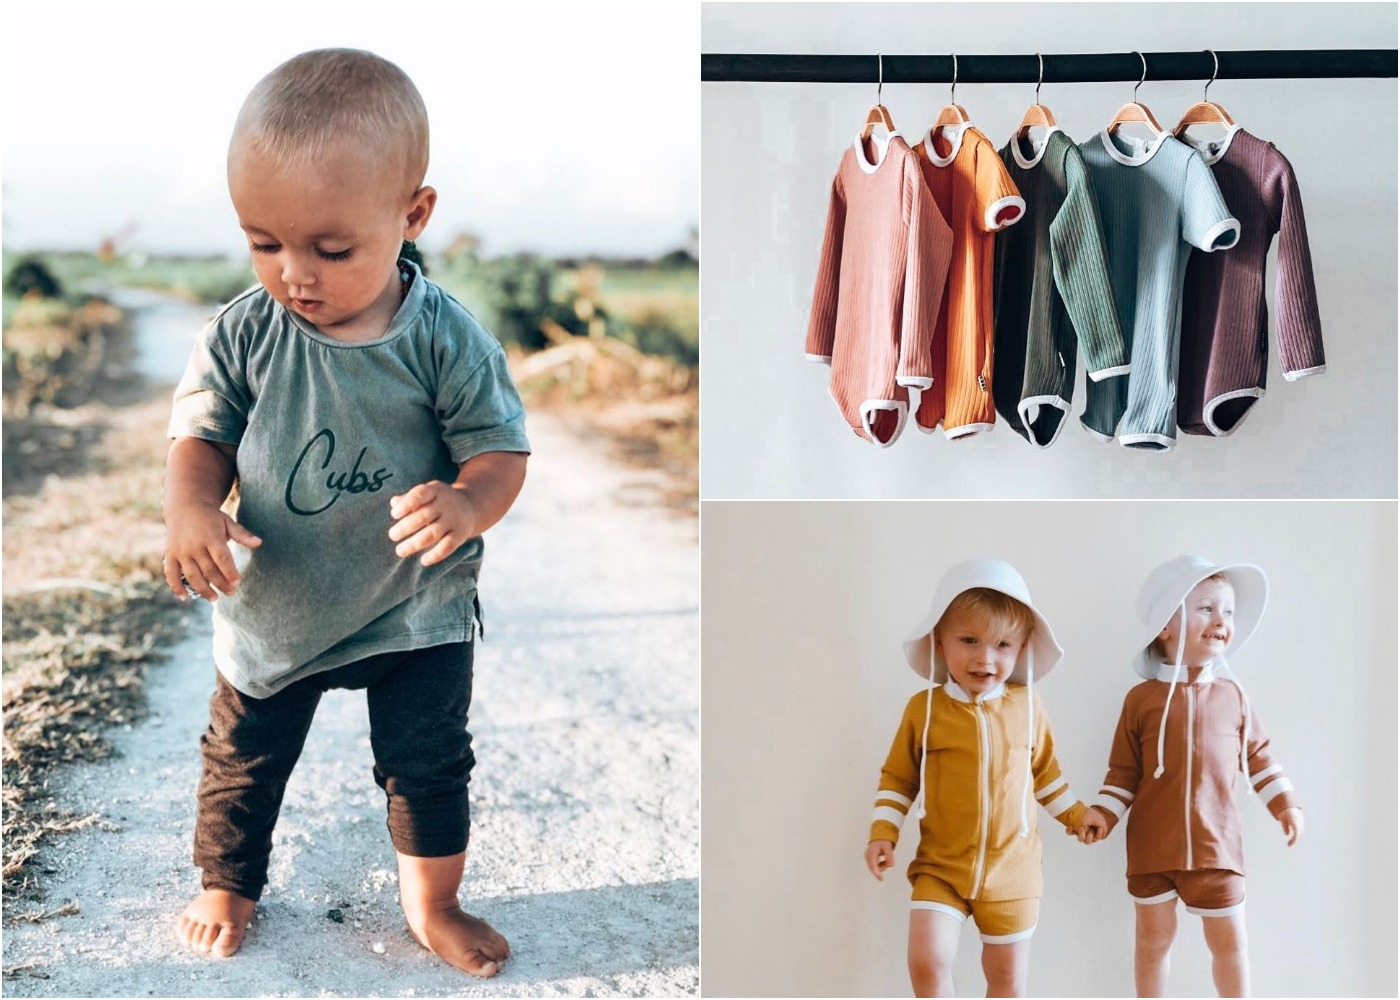 Atilla Cubs by Atilla & Co | The Best Kids Clothing Stores in Bali